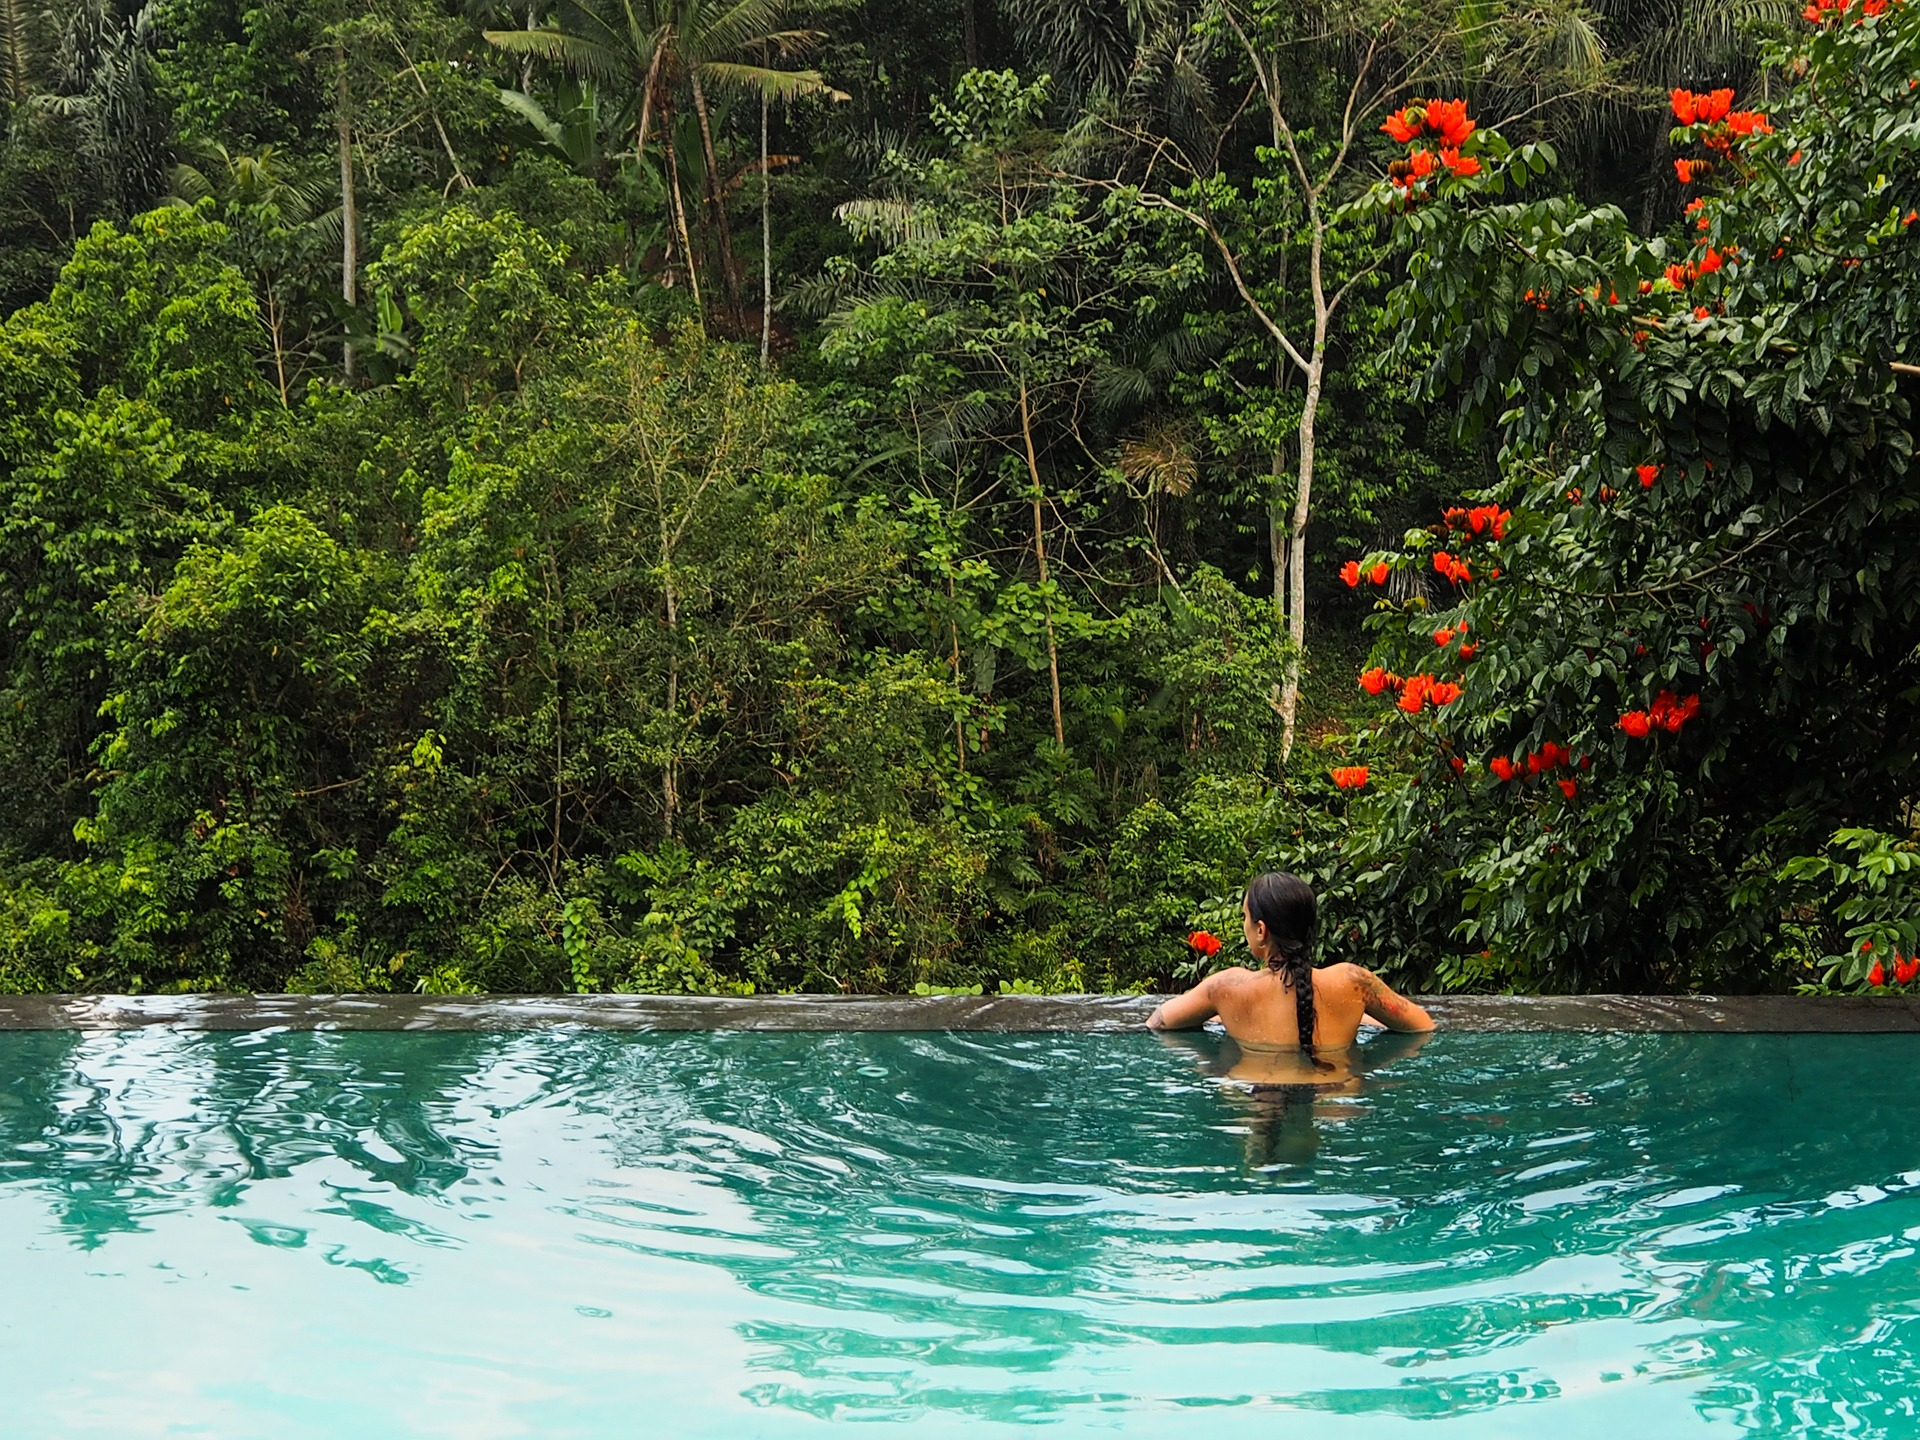 Where to Stay in Bali: The Best Hotels and Towns